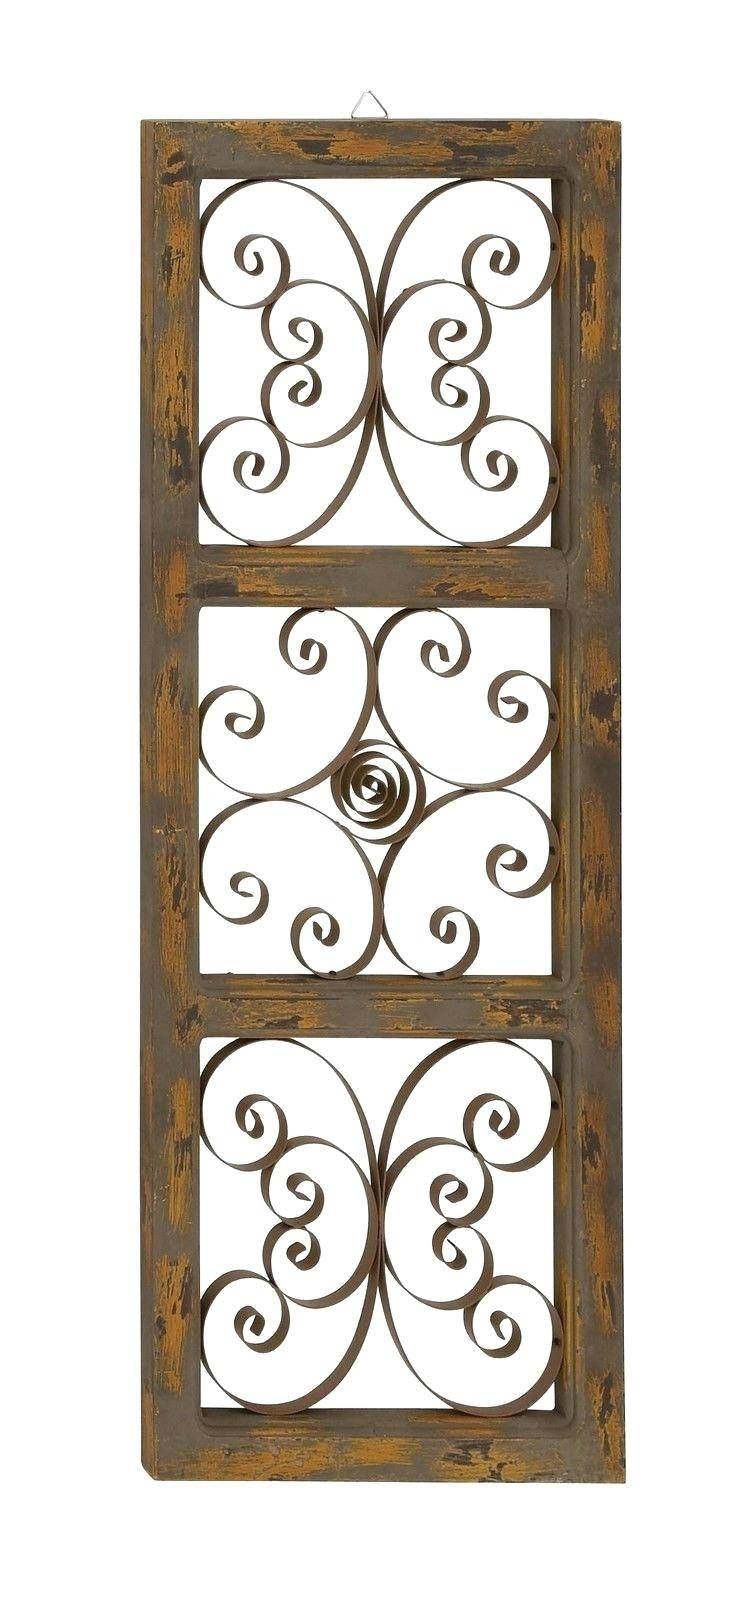 Wall Decor : Chic Large Metal Wood Wall Panel Distressed Wood And Within 2017 Iron Gate Wall Art (View 18 of 25)